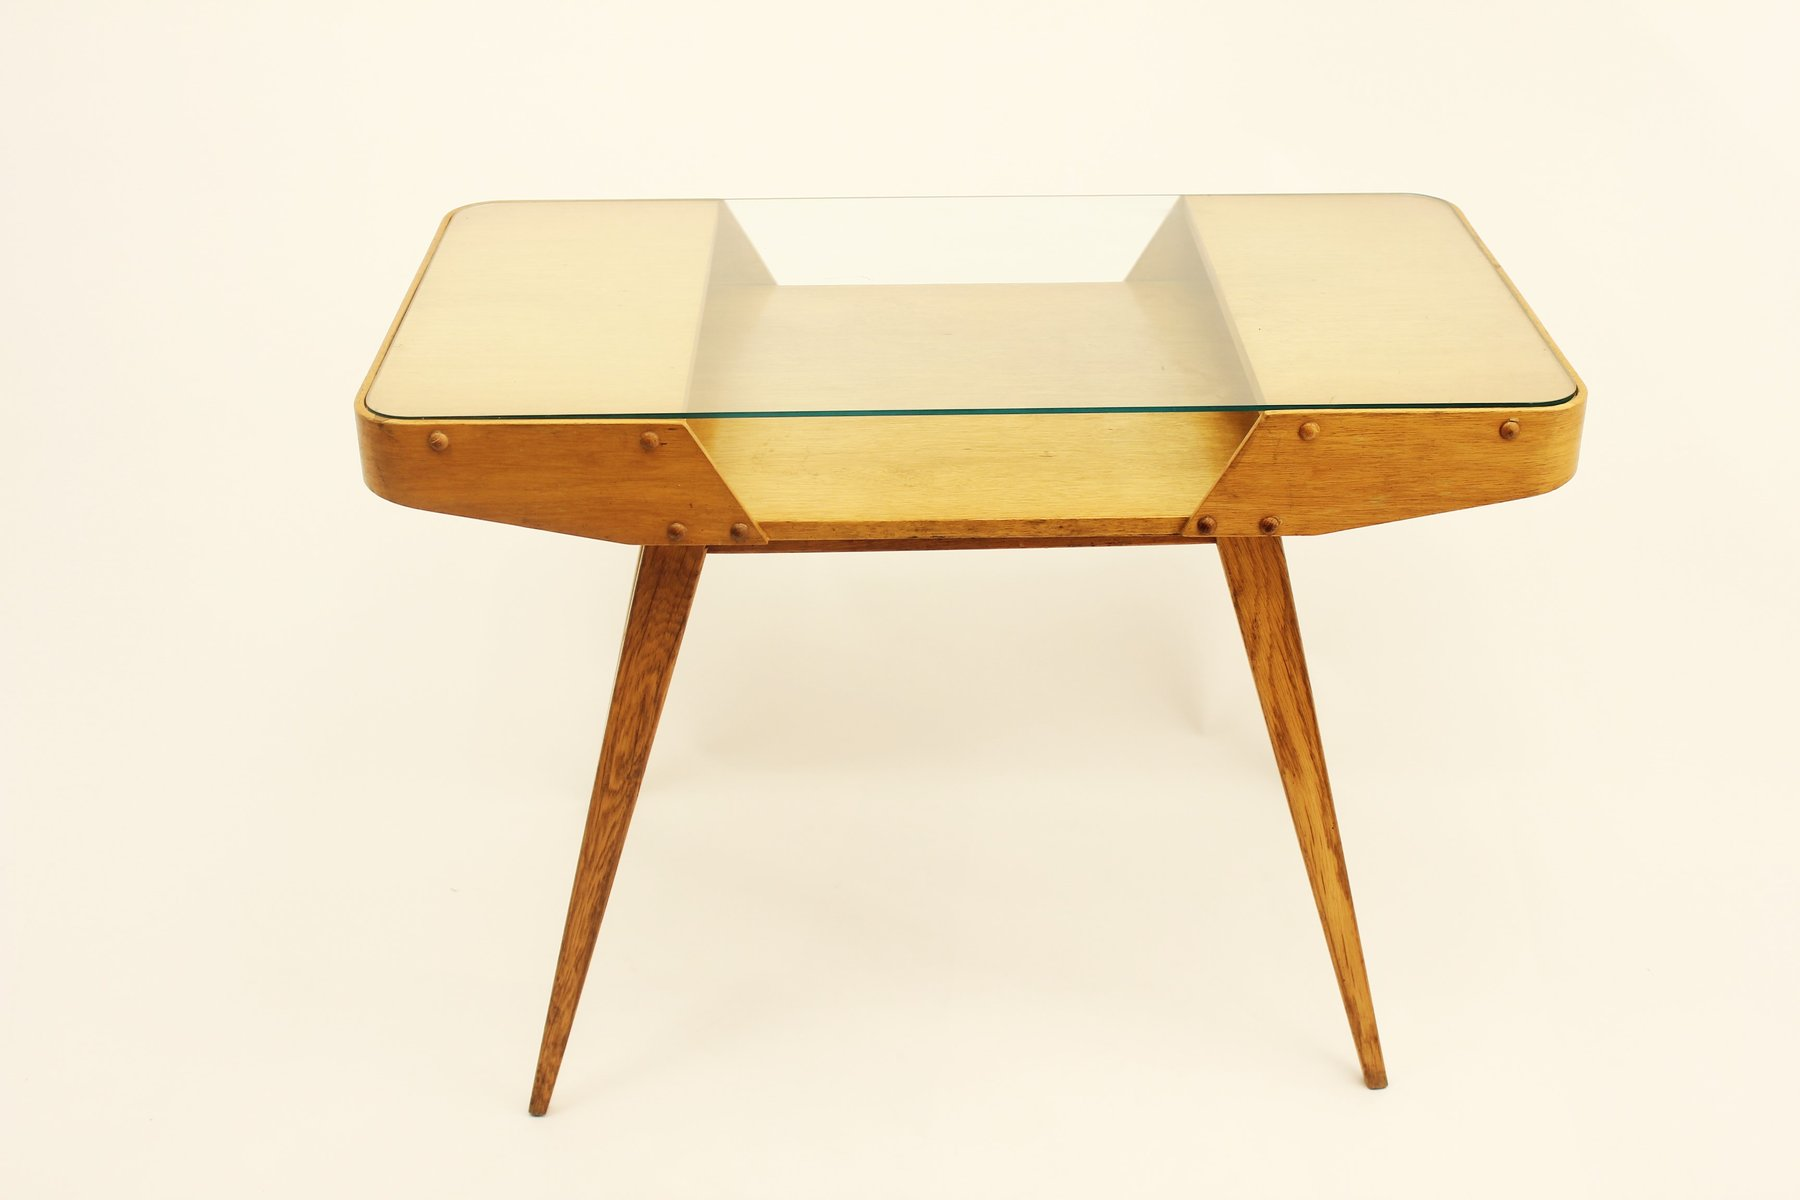 Vintage Czechoslovakian Oak Coffee Table With Glass Top 1960s For Sale At Pamono